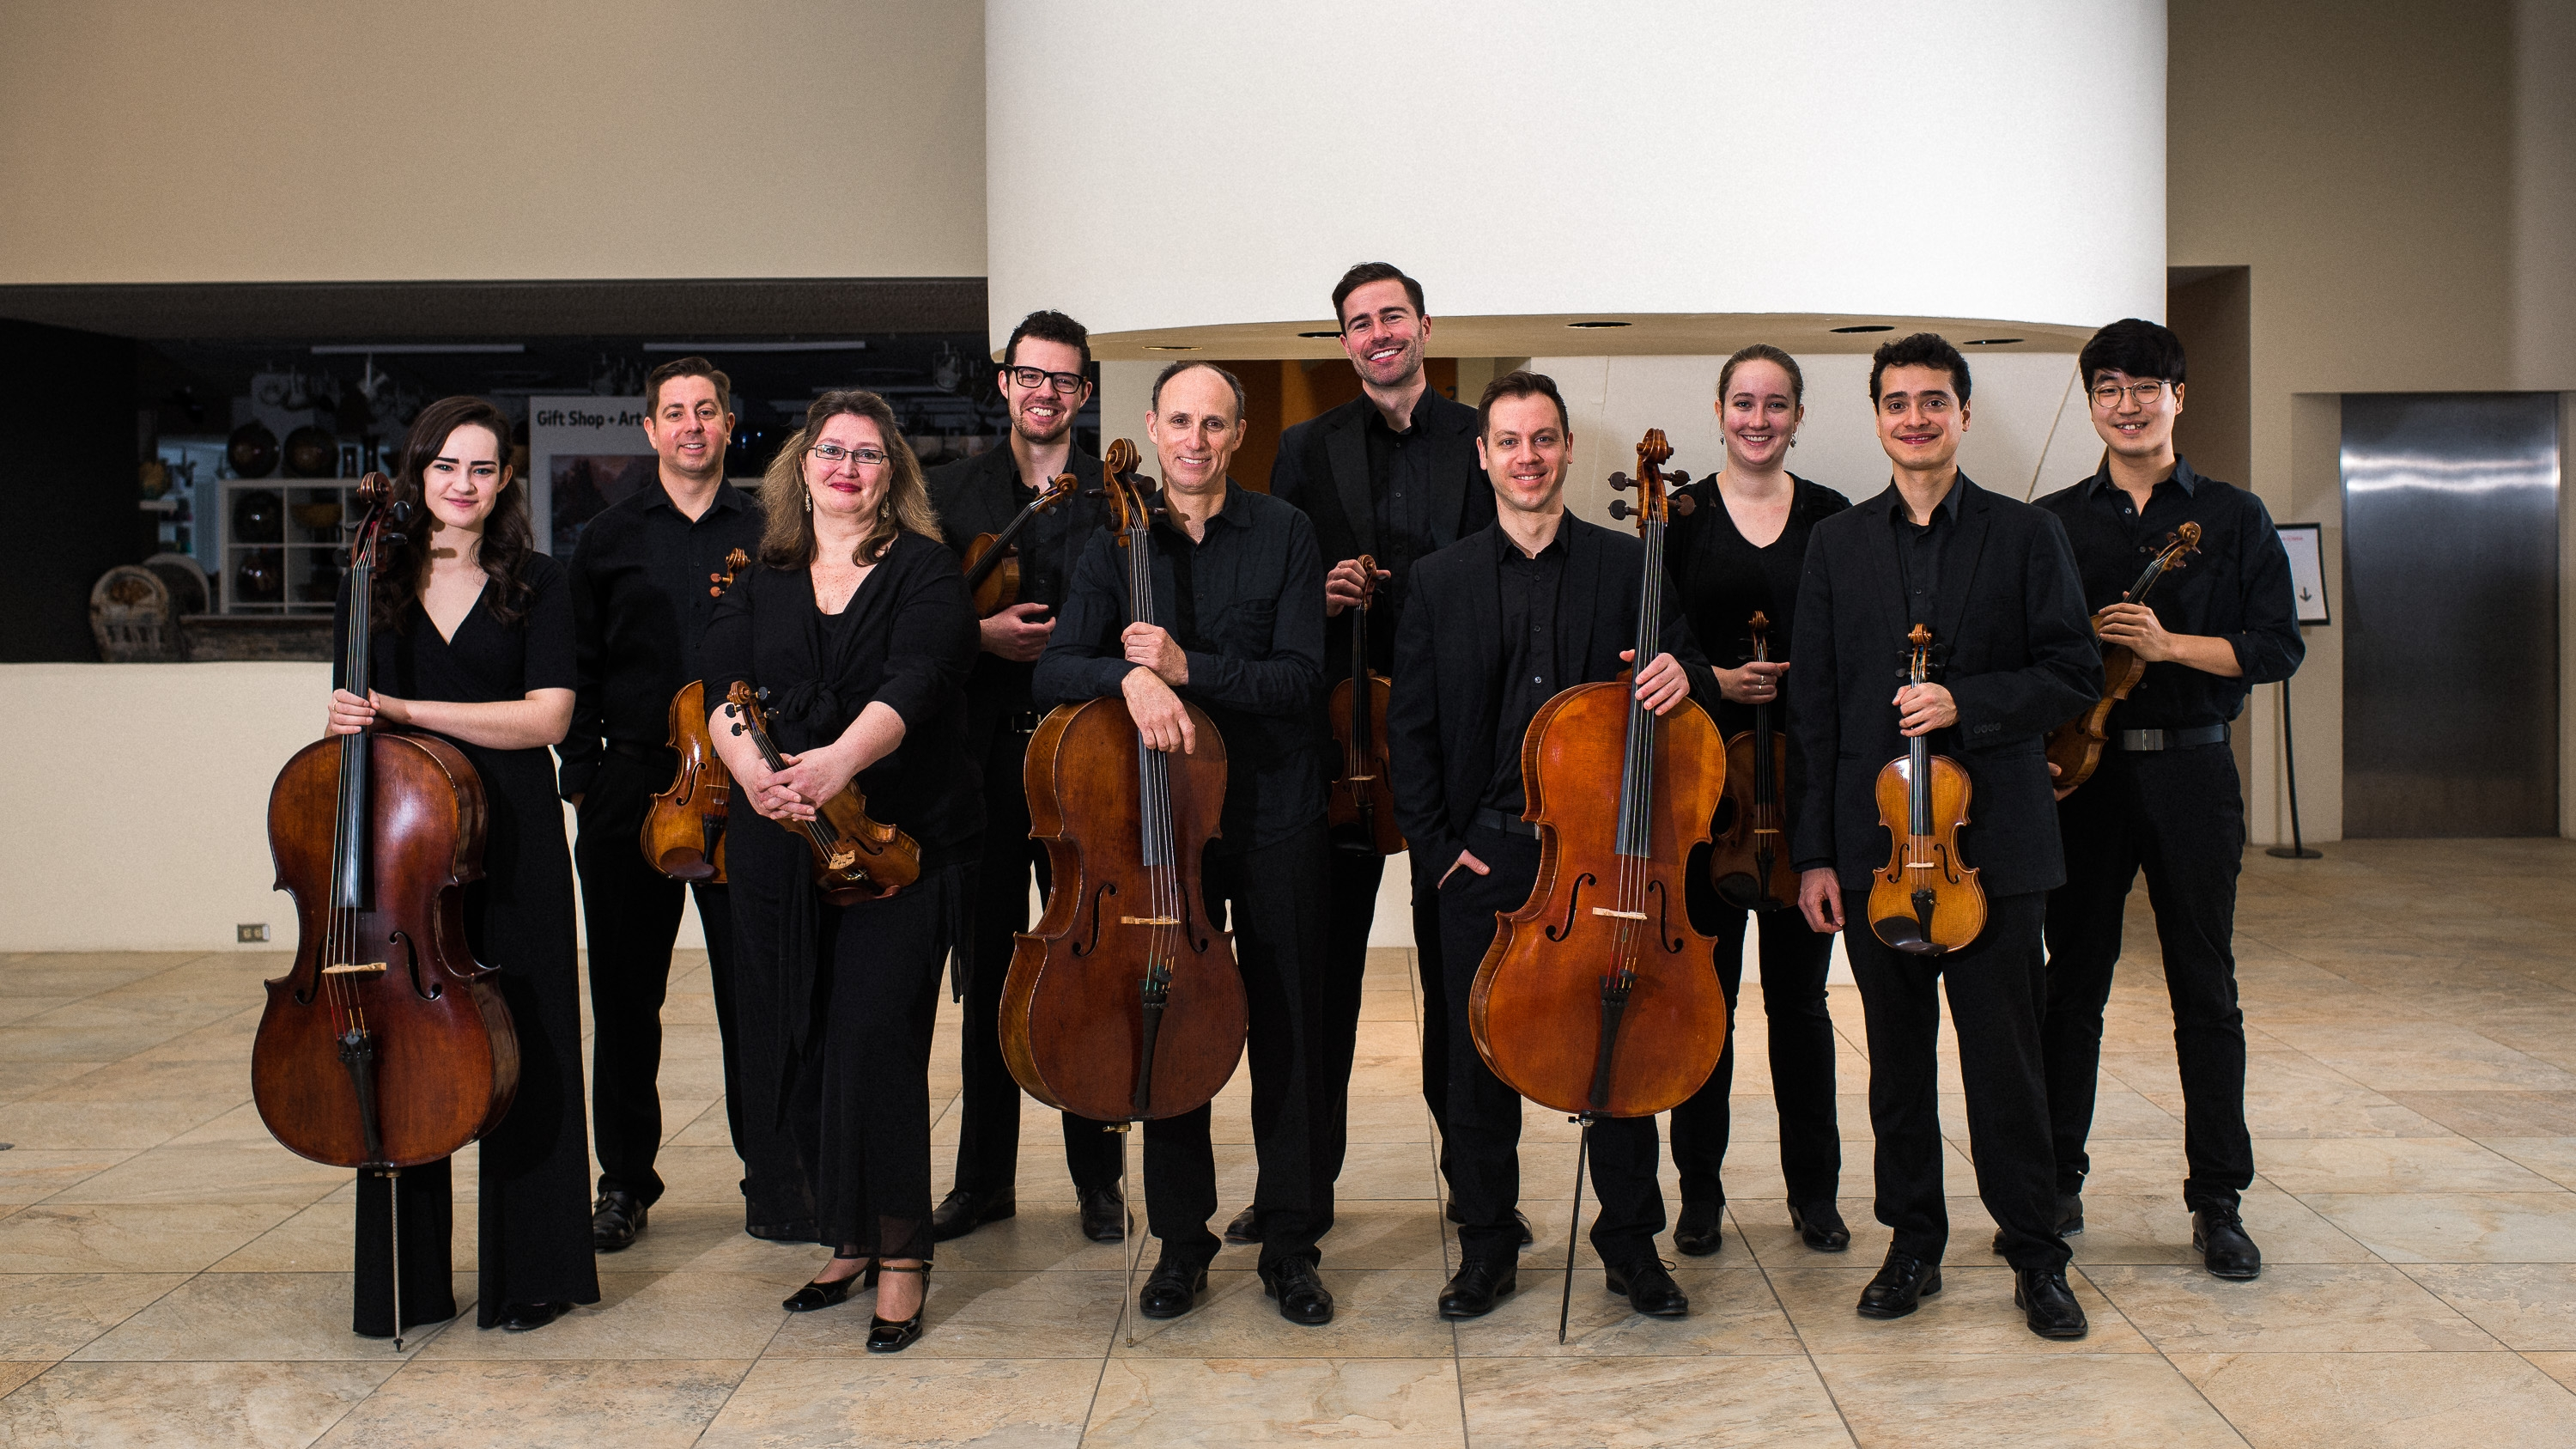 Magisterra Soloists. Contributed photo.